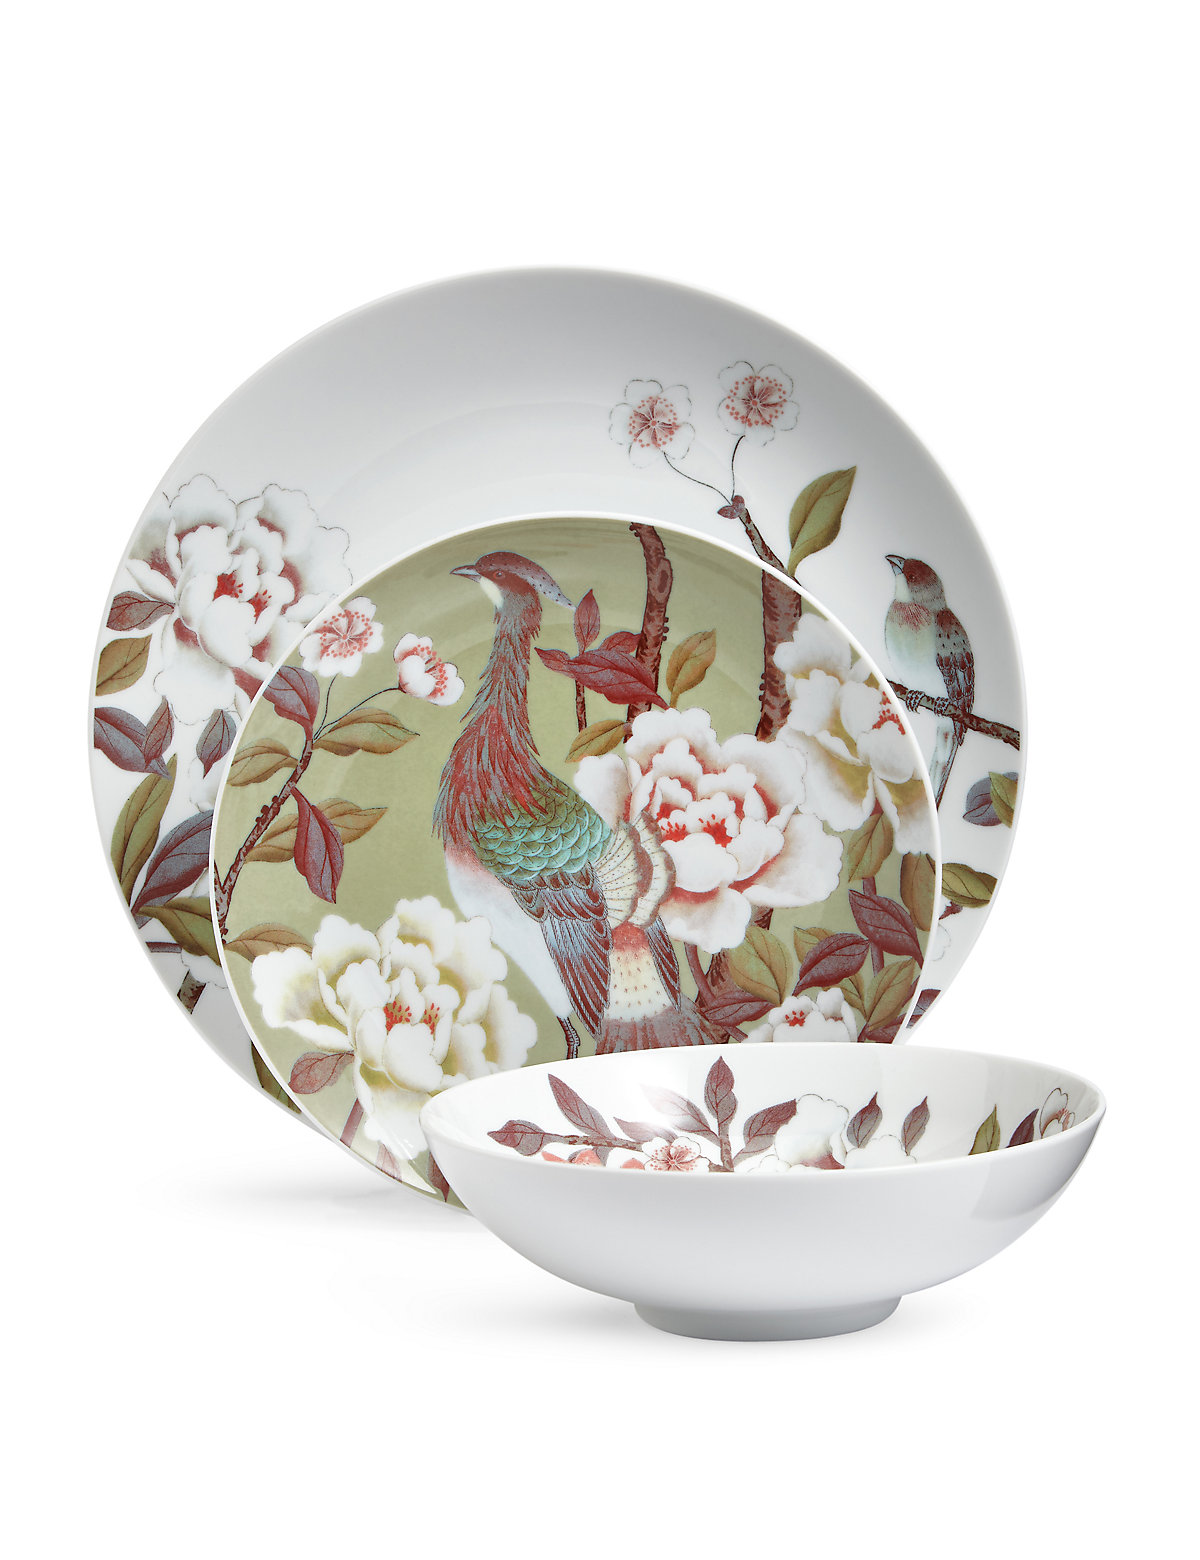 Image of 12 Piece Ophelia Dinner Set